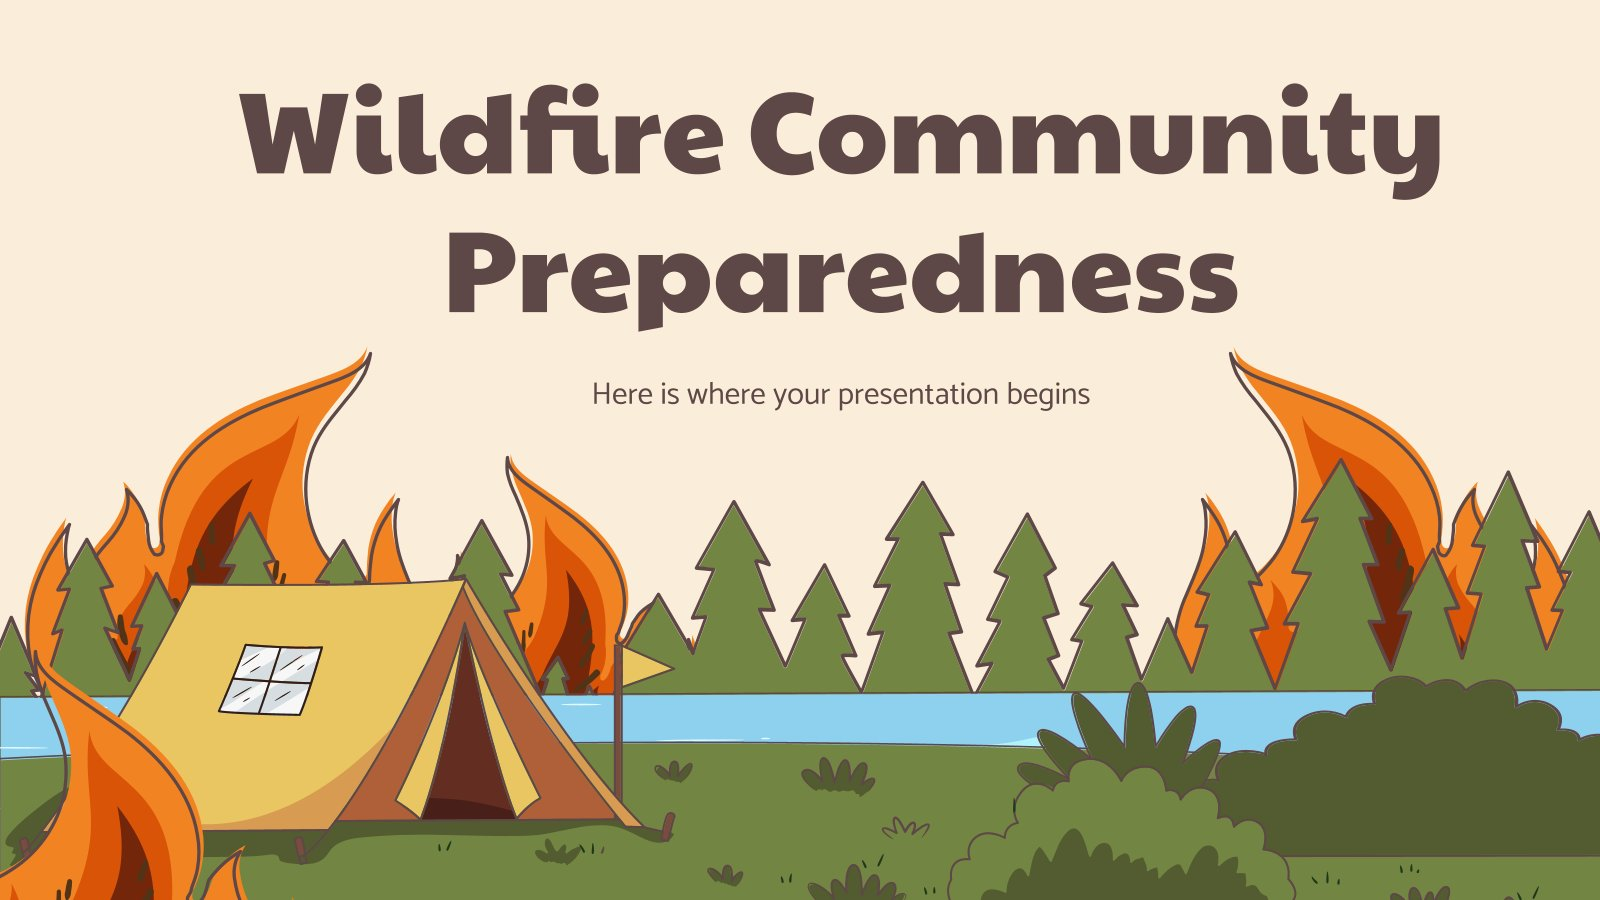 Wildfire Community Preparedness presentation template